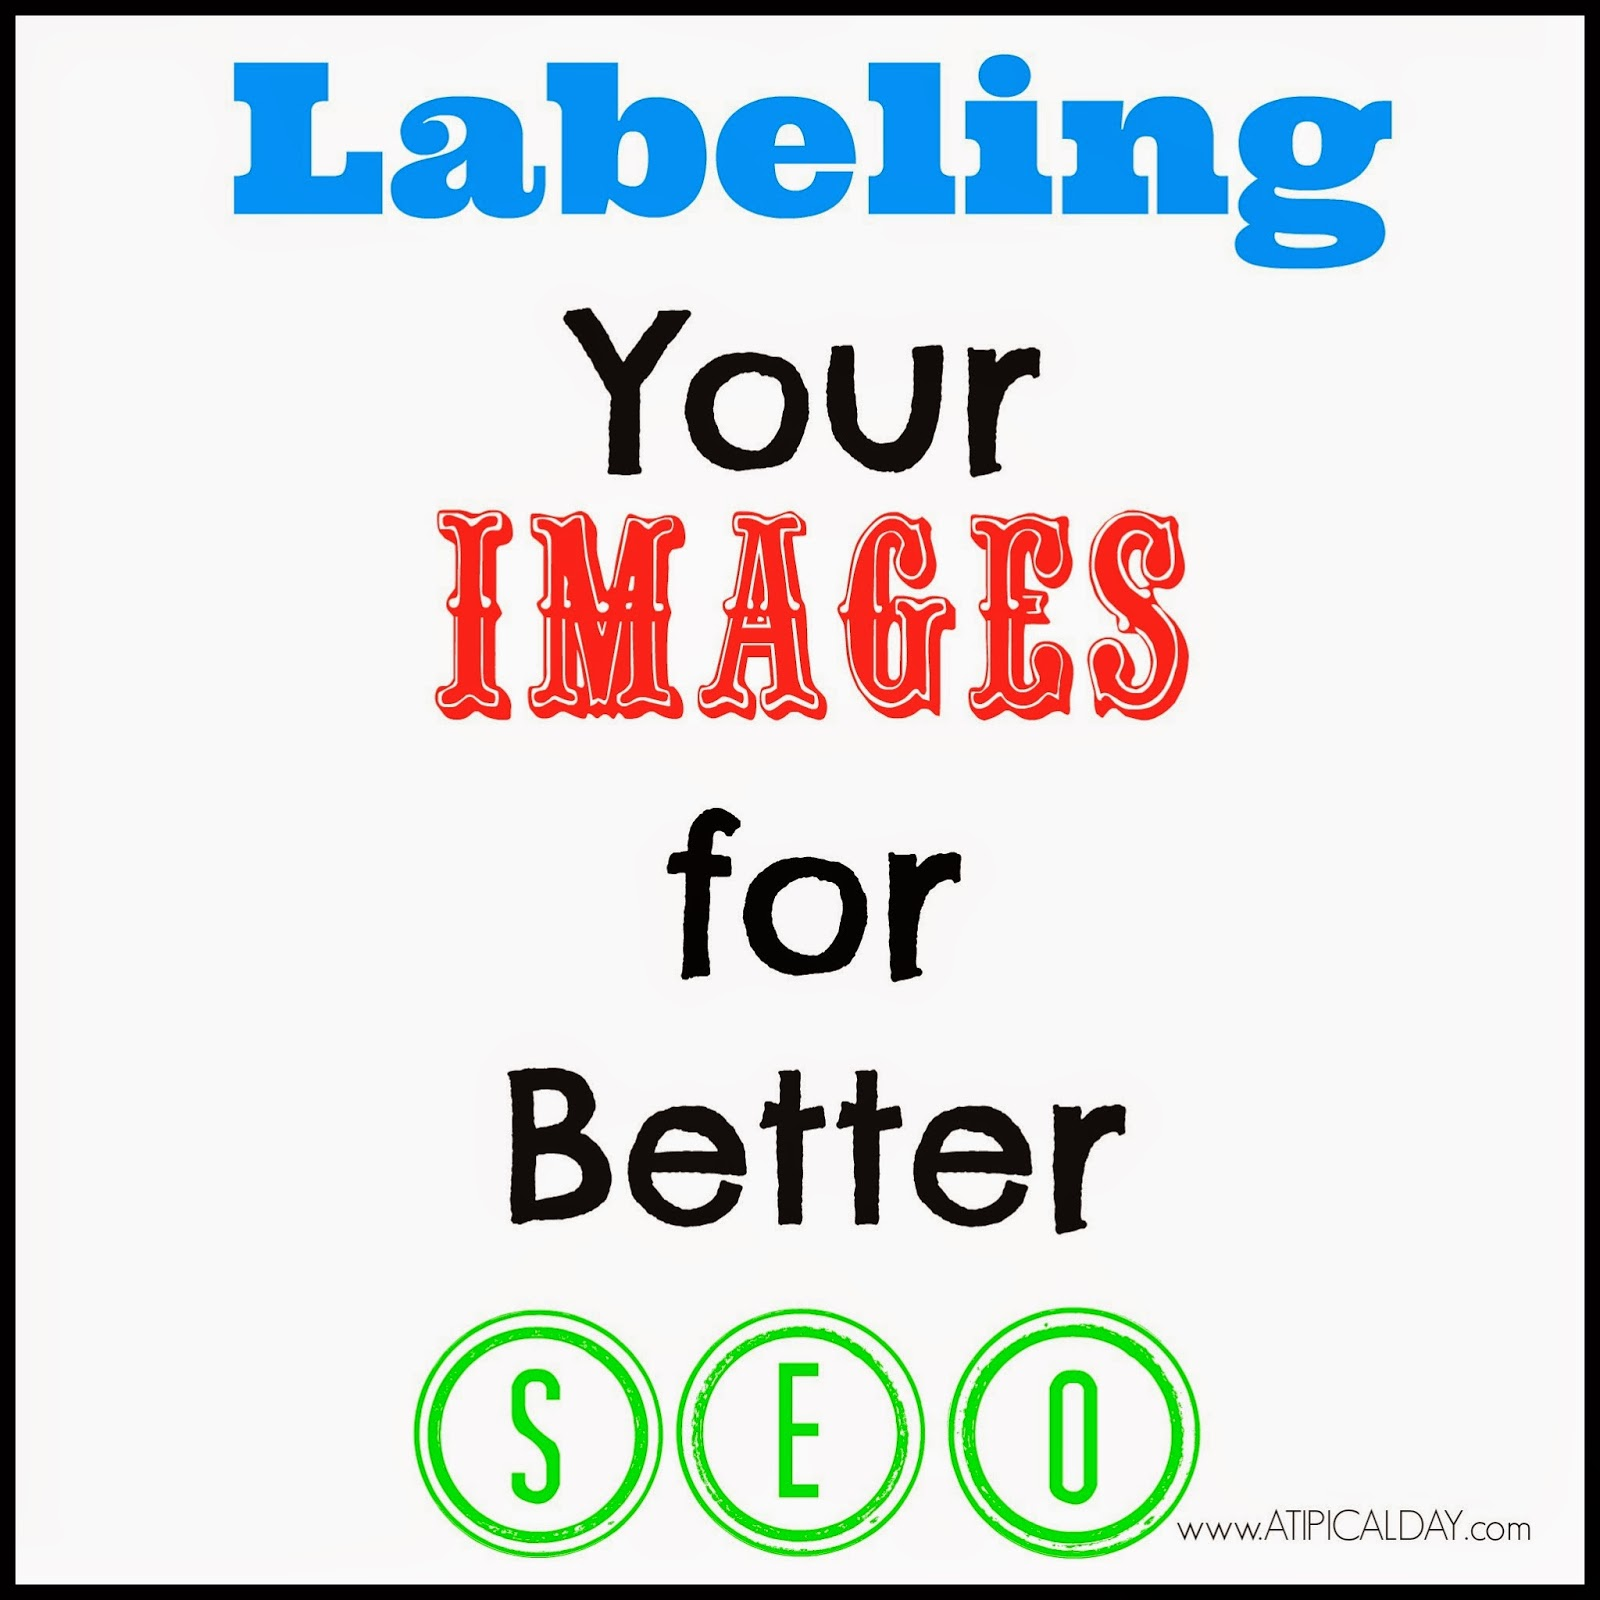 Labeling Your Images for Better SEO in Blogger @atipicalday #labelingimages #blogger #seo #customizingpins #pinterest